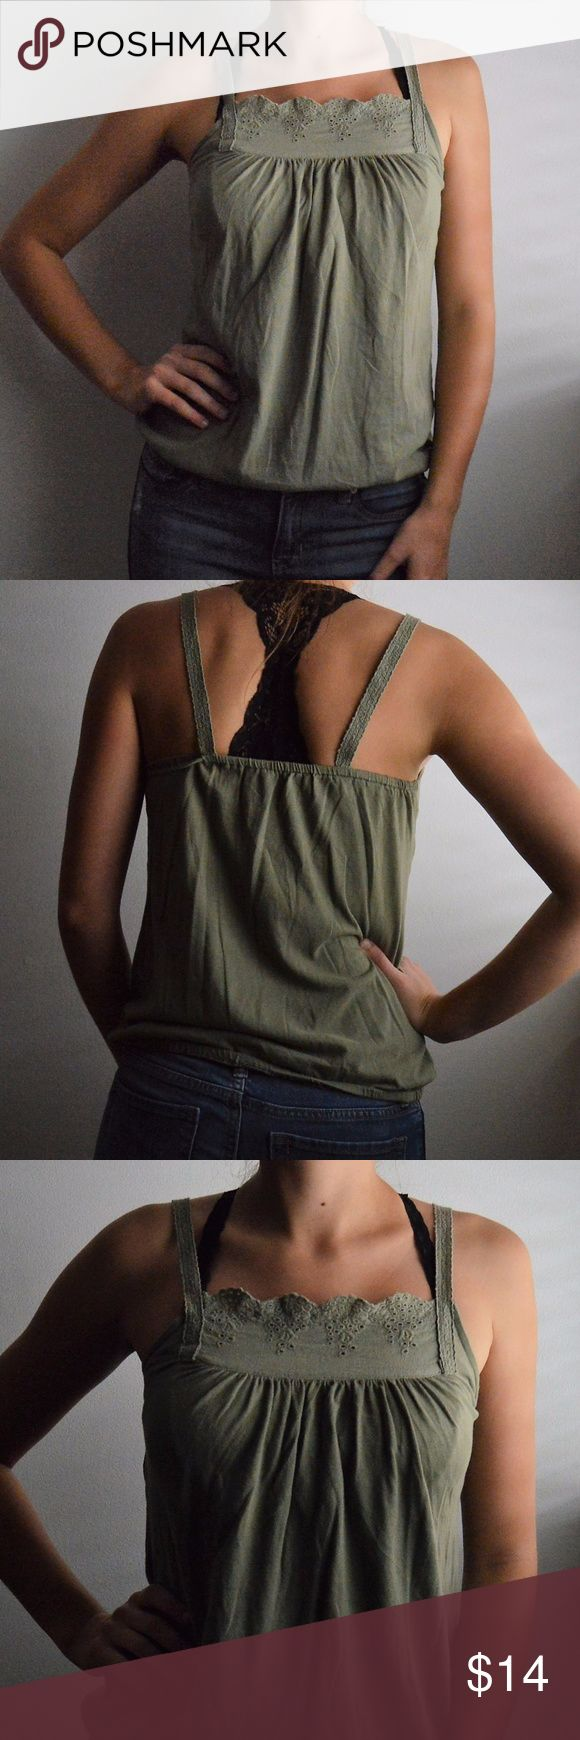 [old navy] olive tank top Olive tank top from Old Navy. Also comes in fuchsia and gray (see other listings). Lace detail on top of tank. SIze: XS Like new condition!  This listing is for ONE tank...create a bundle for all three and a special deal! Old Navy Tops Tank Tops